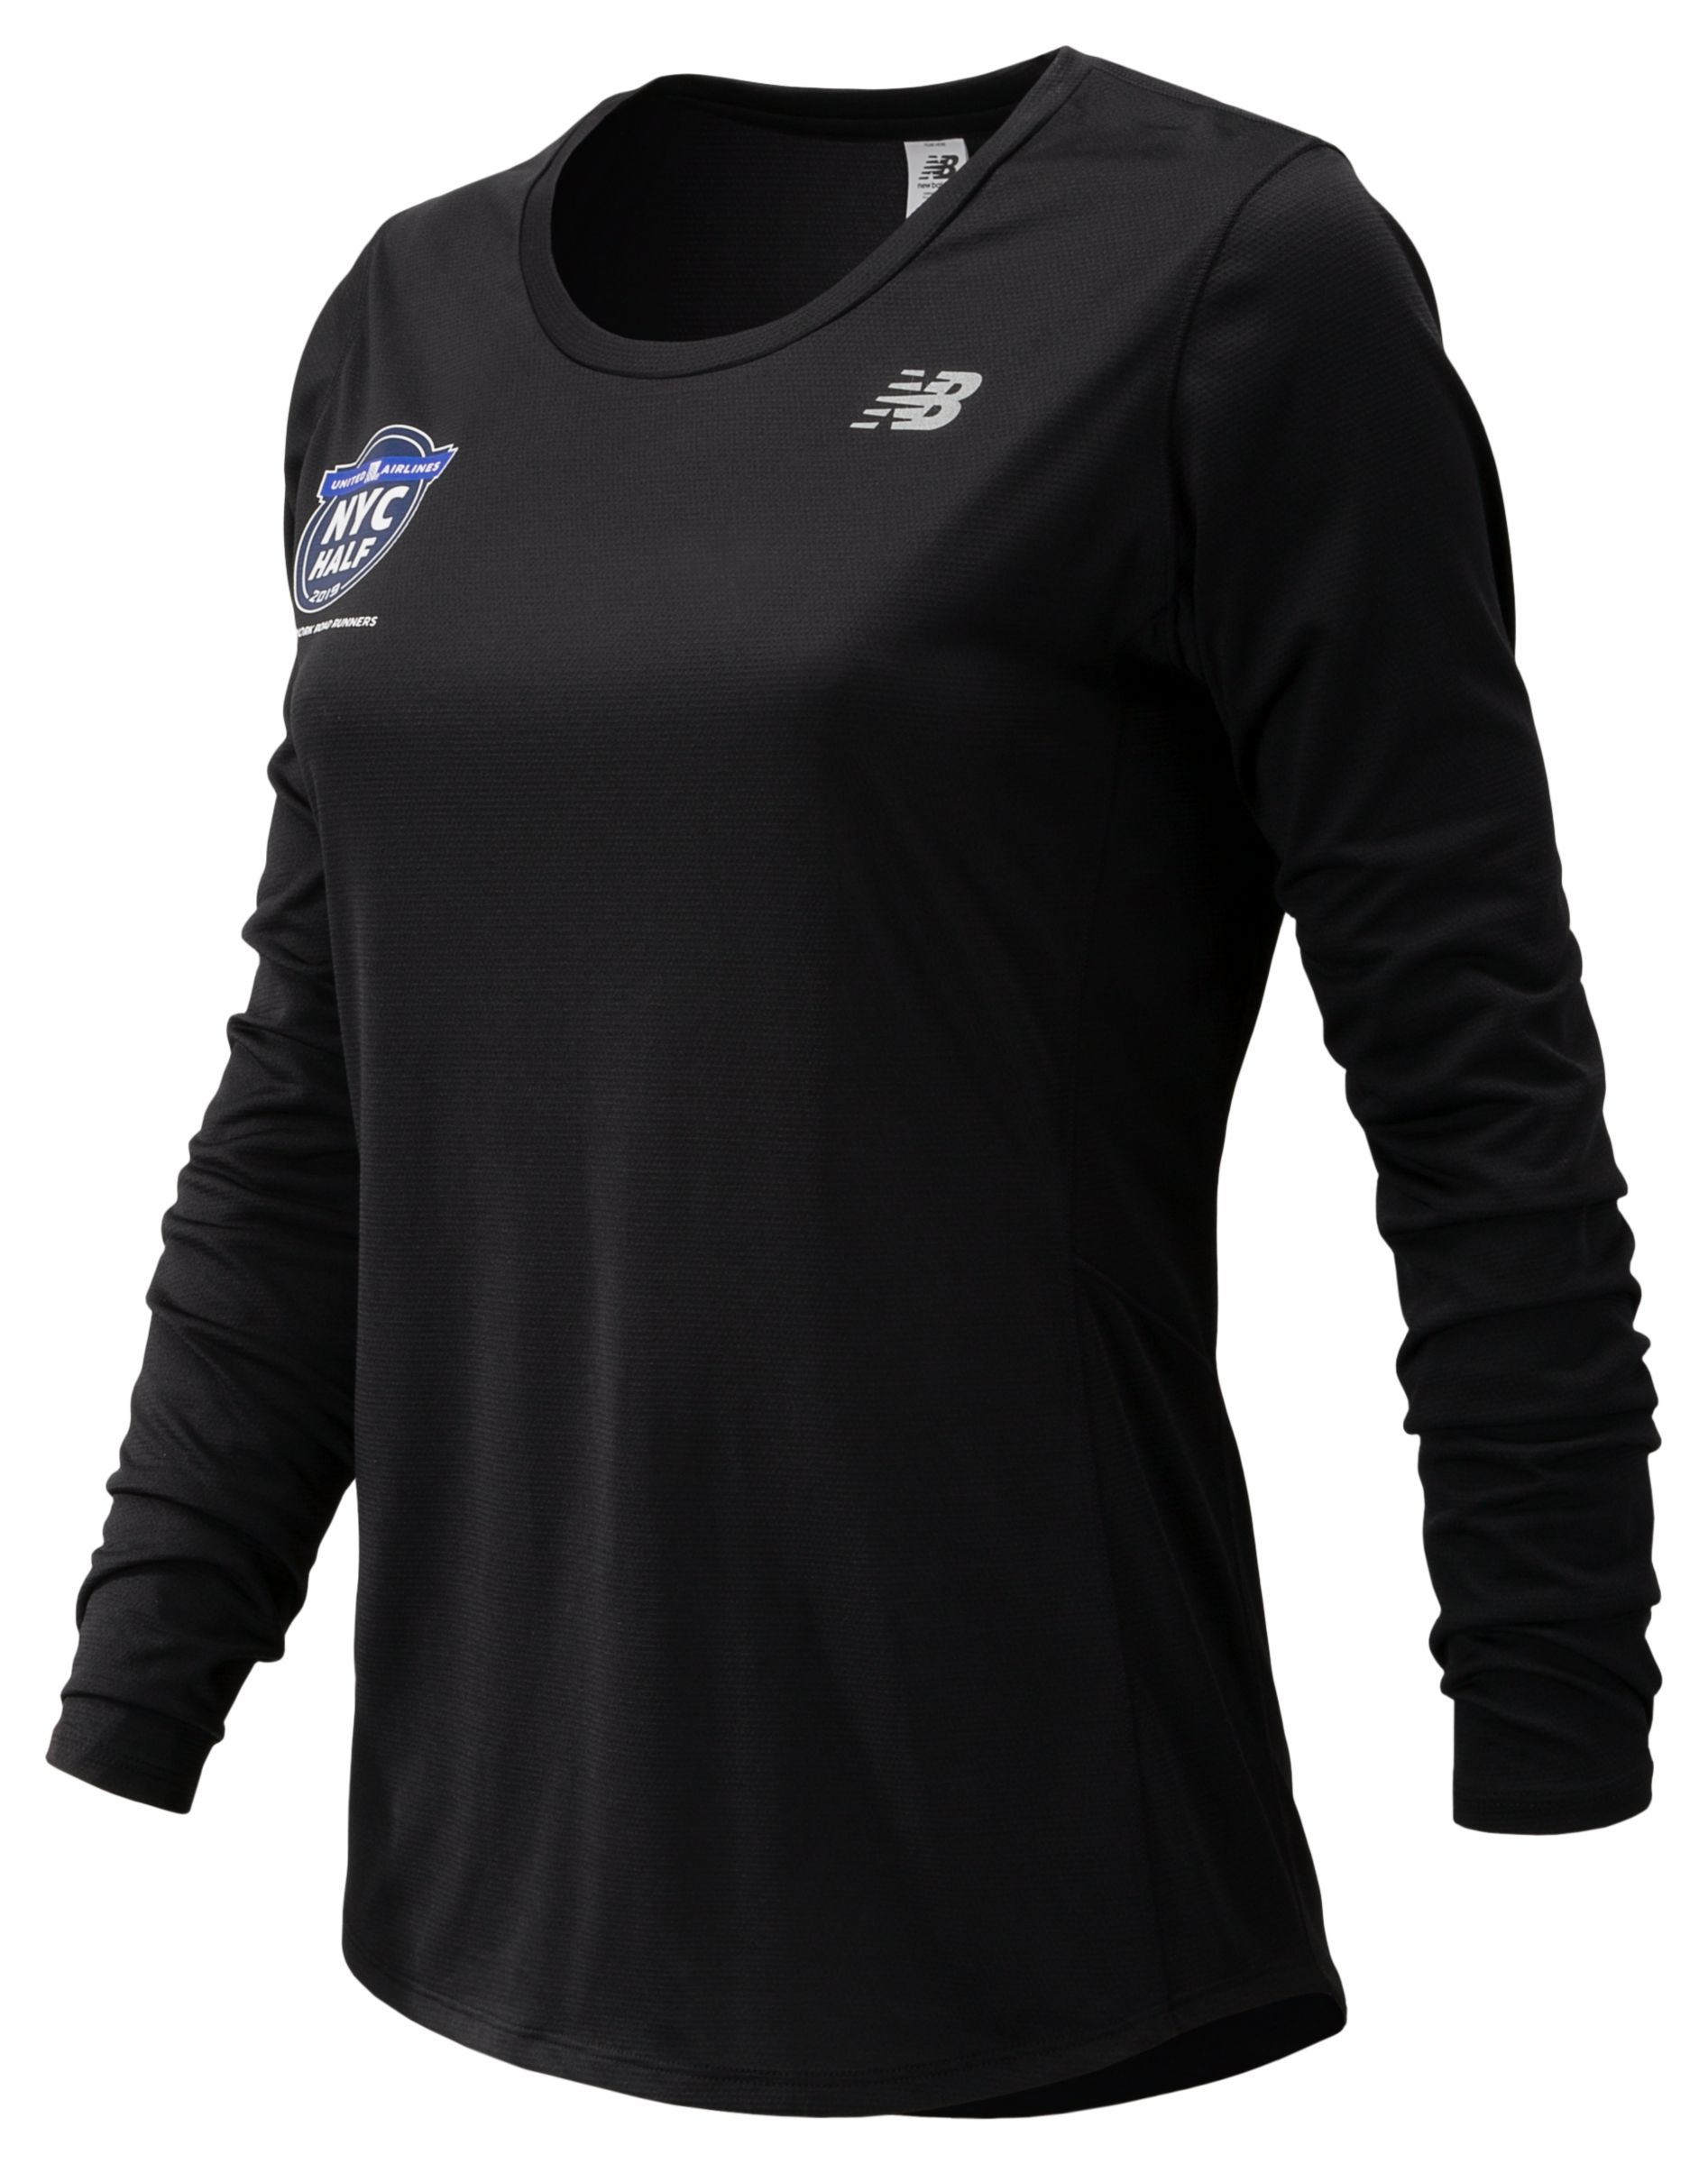 Women's 2018 United NYC Half Training Accelerate Long Sleeve